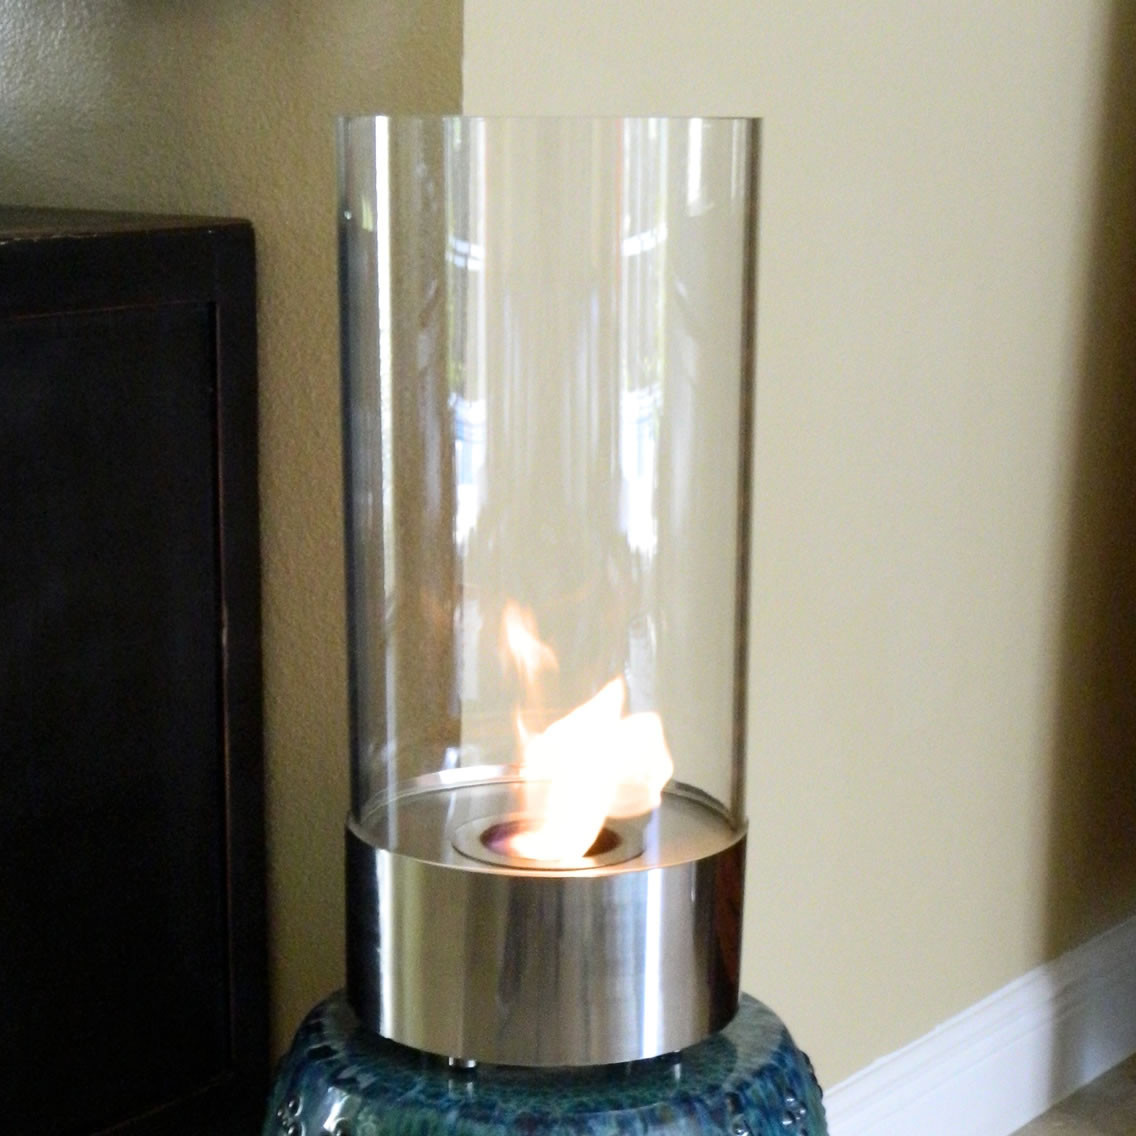 Nu Flame Cristallo Stunning Tabletop Fire Cylinder Picture 308